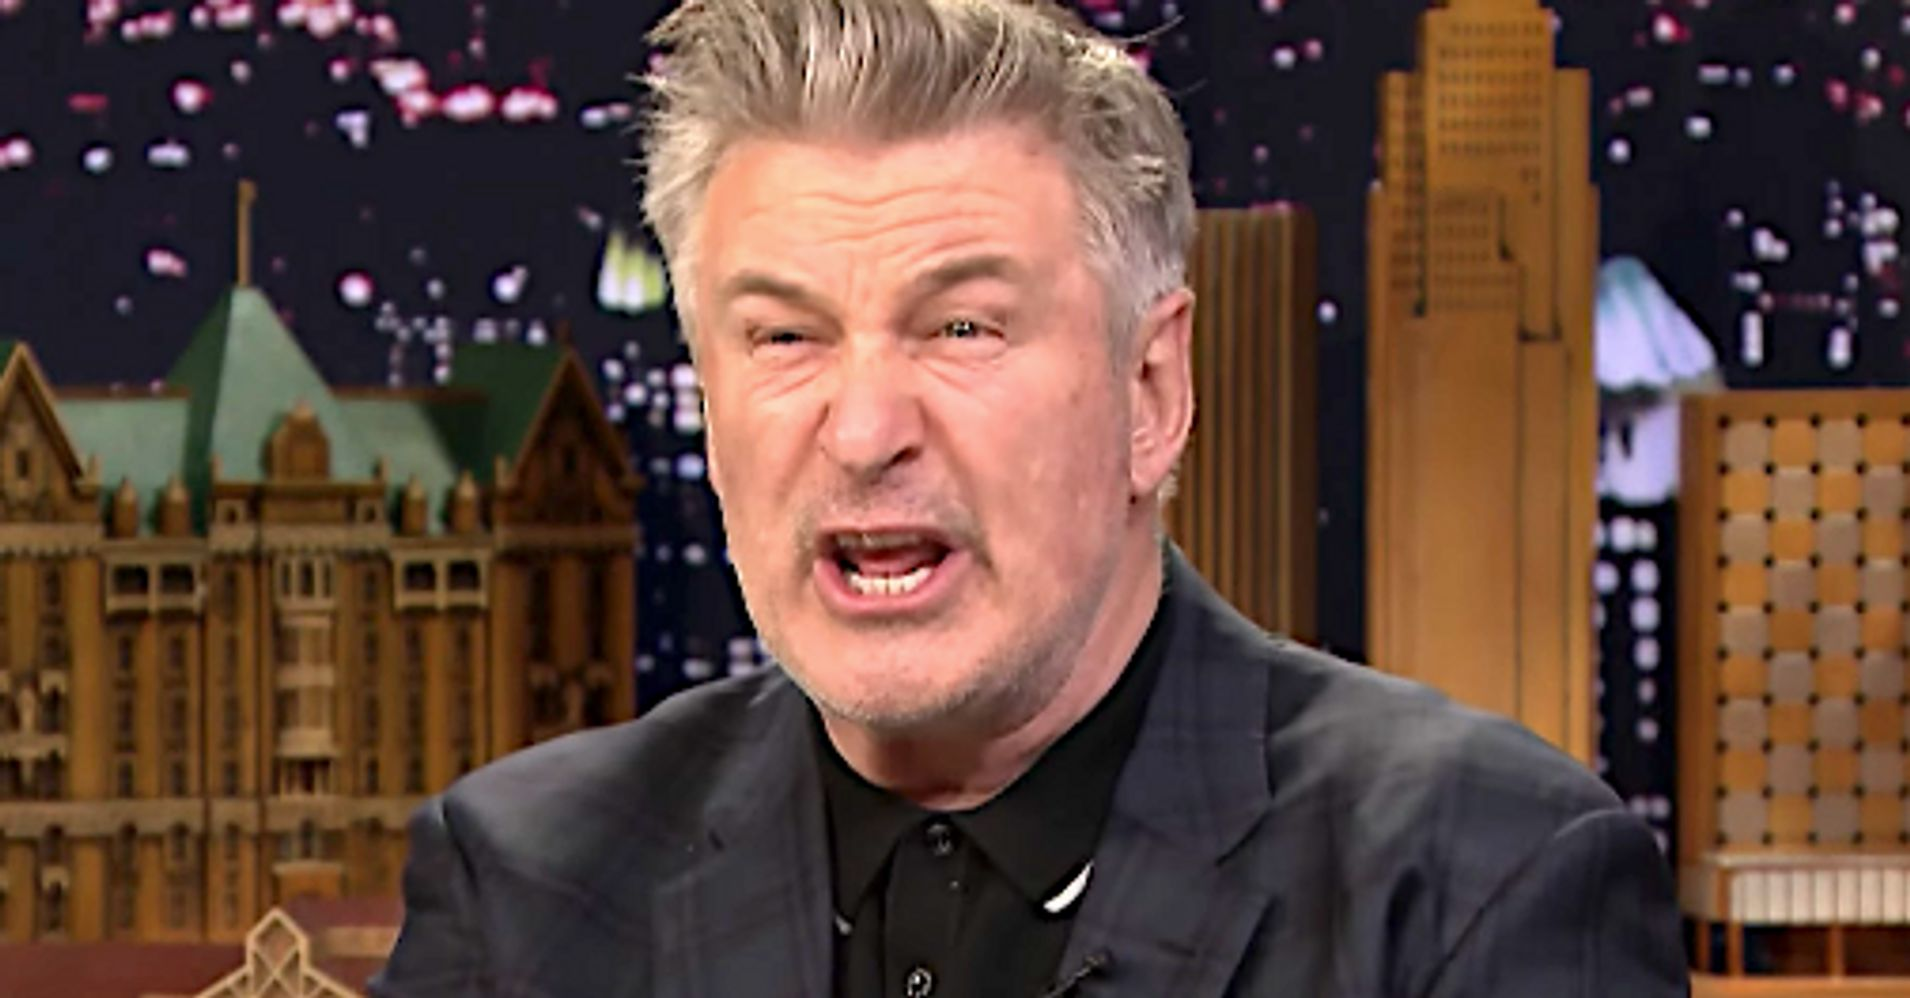 Alec Baldwin Takes Feud With Trump Up Another Notch